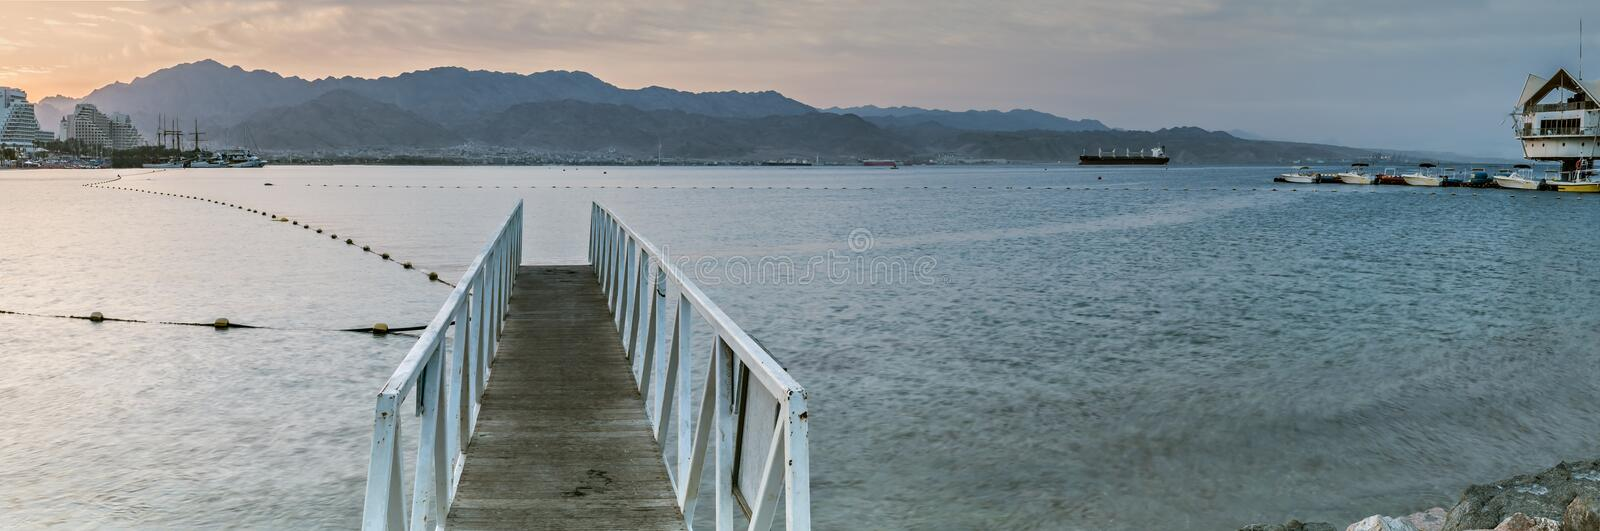 Morning view on the gulf of Aqaba near Eilat royalty free stock photos